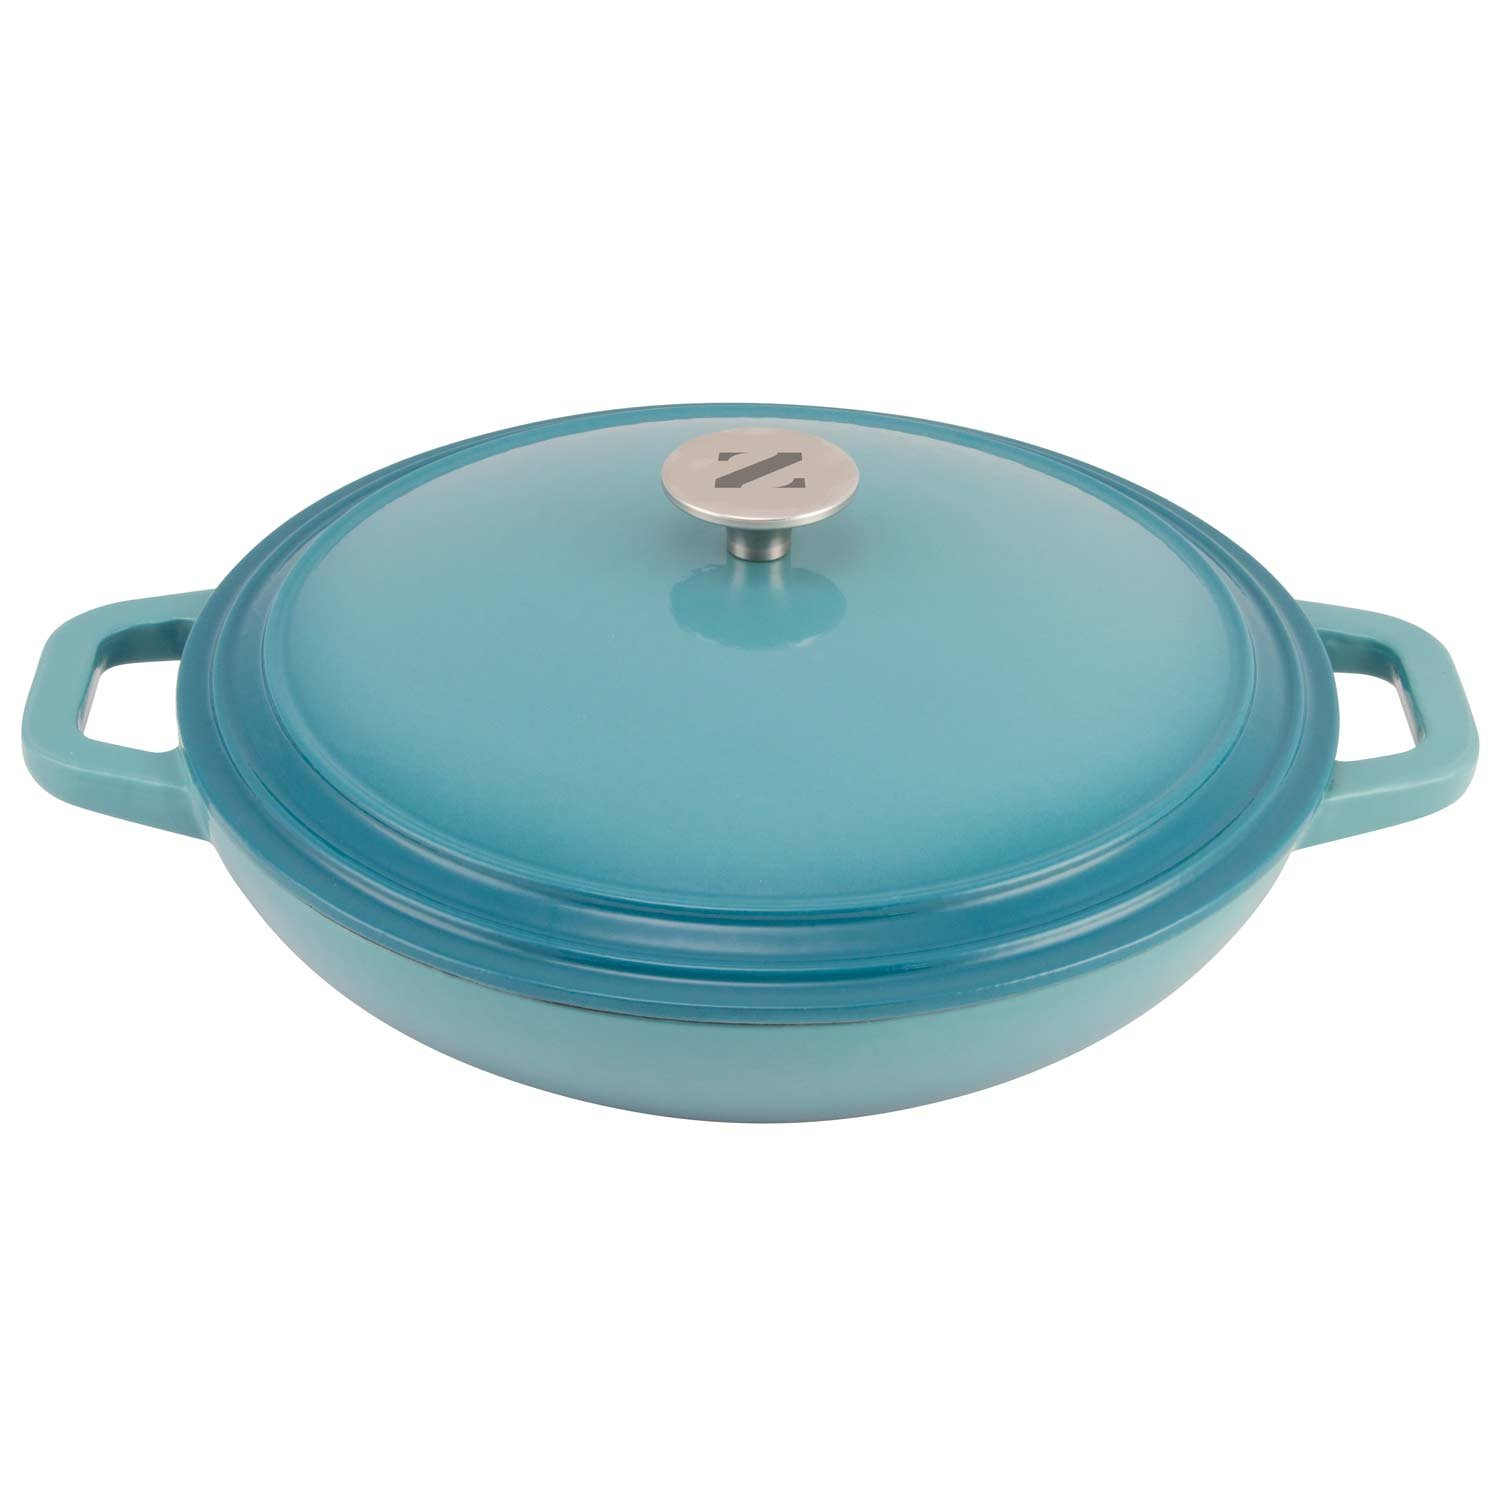 Zelancio Cookware 3 Quart Enameled Cast iron Casserole Dish with lid - Perfect for Brazing, Slow Cooking, Simmering and Baking (Teal)